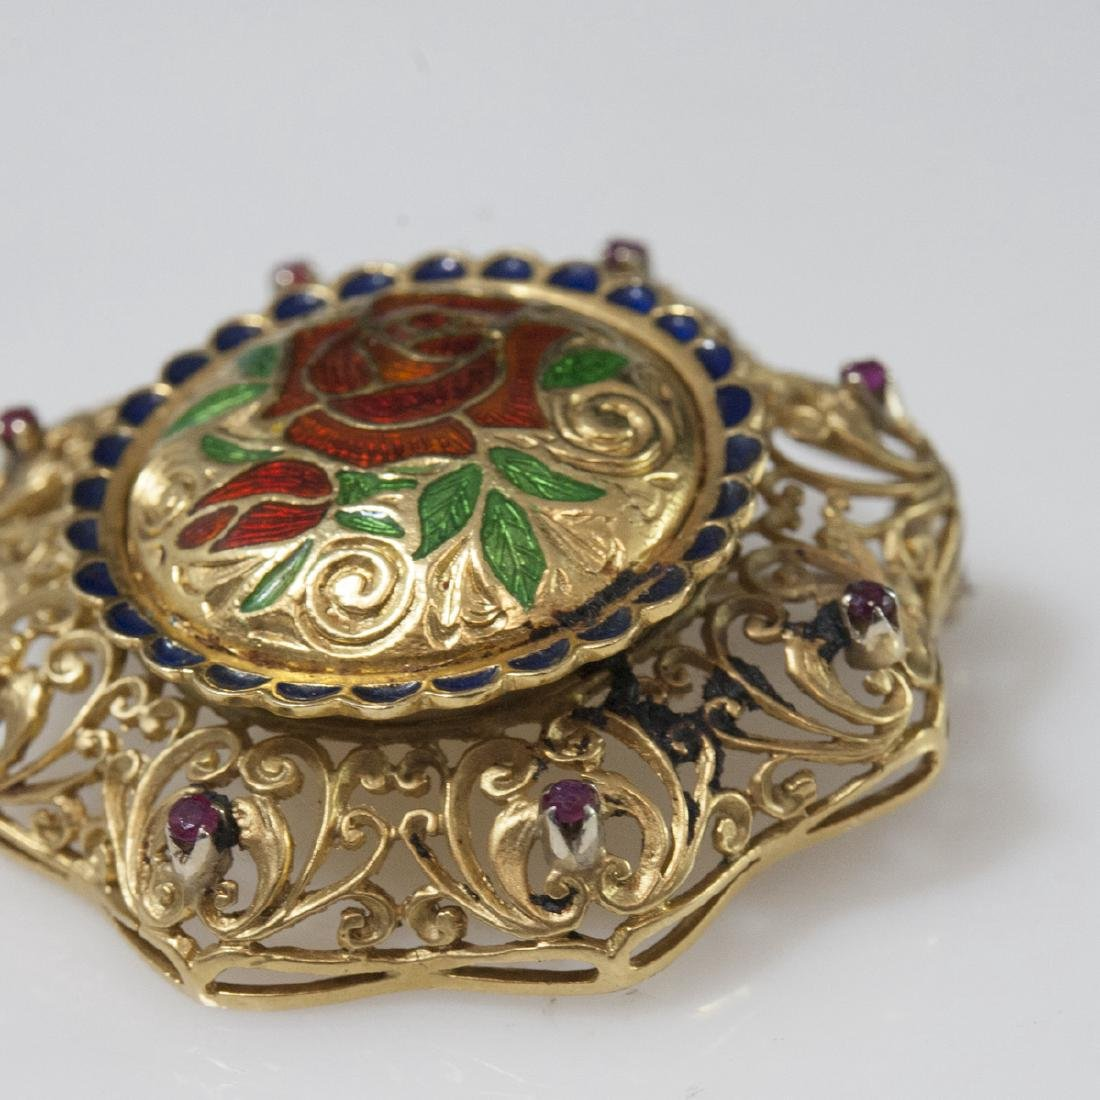 Italian 18kt Enameled Gold & Ruby Brooch - 2